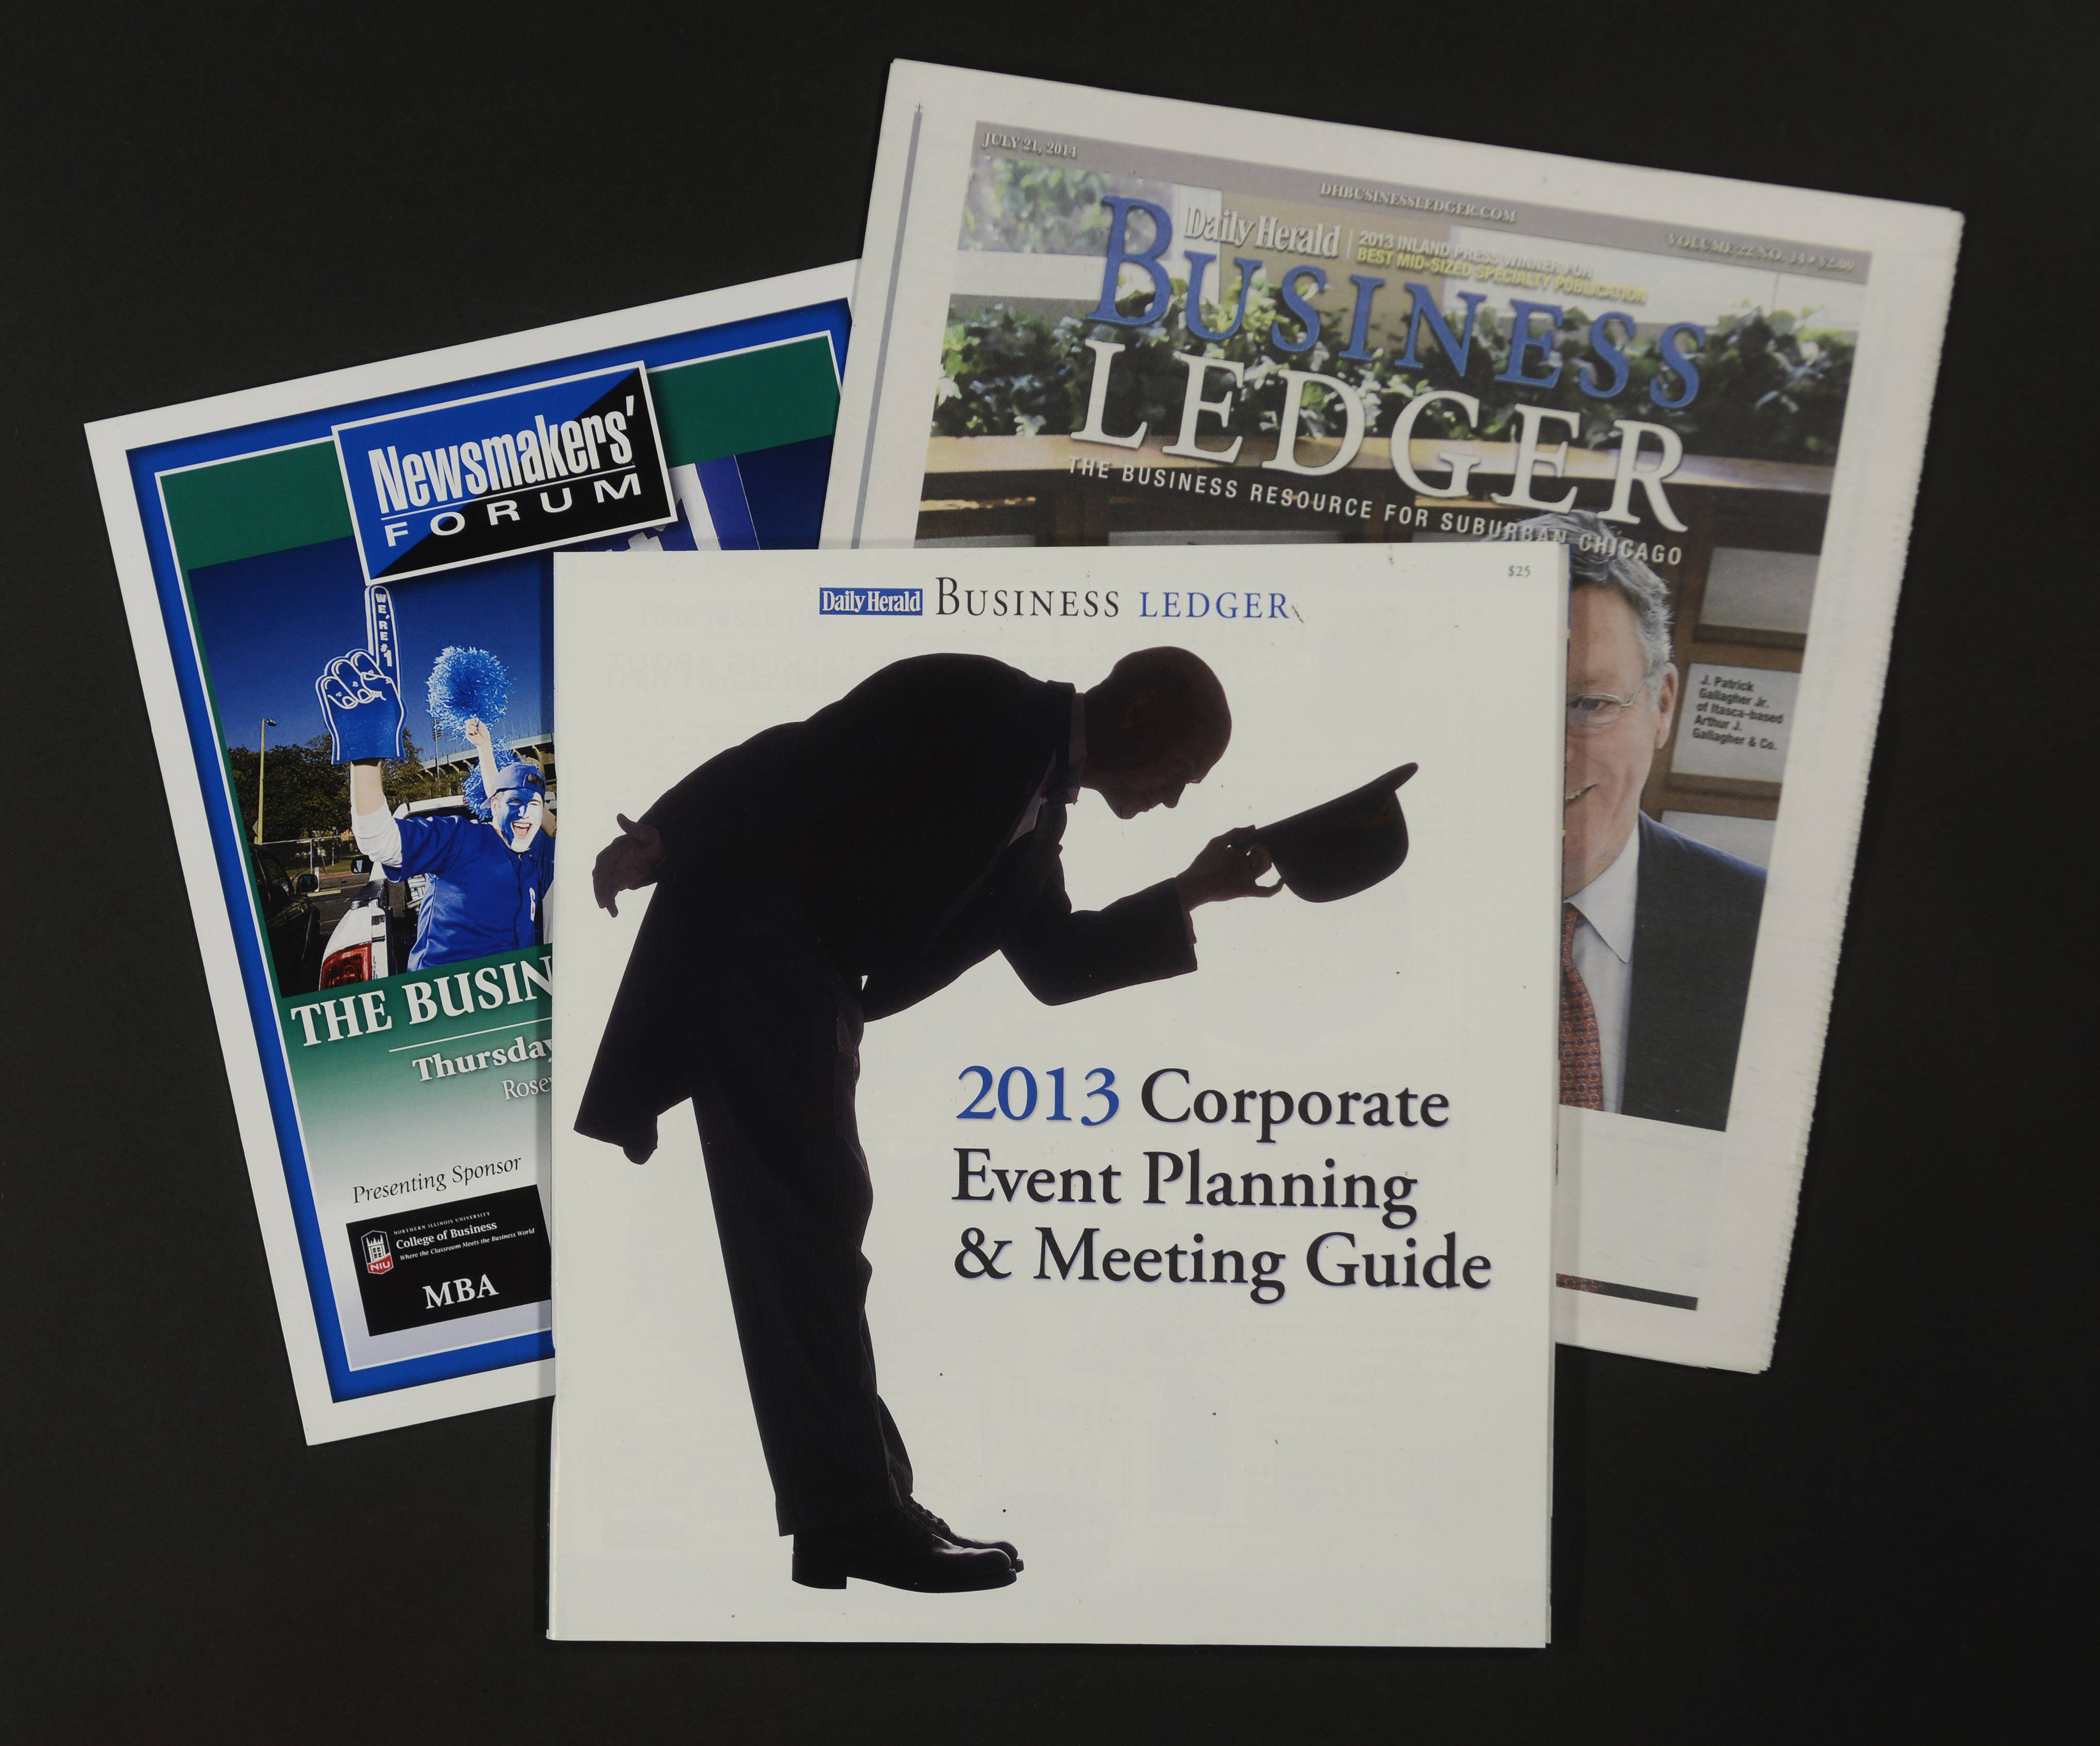 The 2013 Business Ledger Corporate Event Planning & Meeting Guide, center, was among the Daily Herald Business Ledger products and marketing events honored by the Inland Press Association in its annual New Business Development contest.